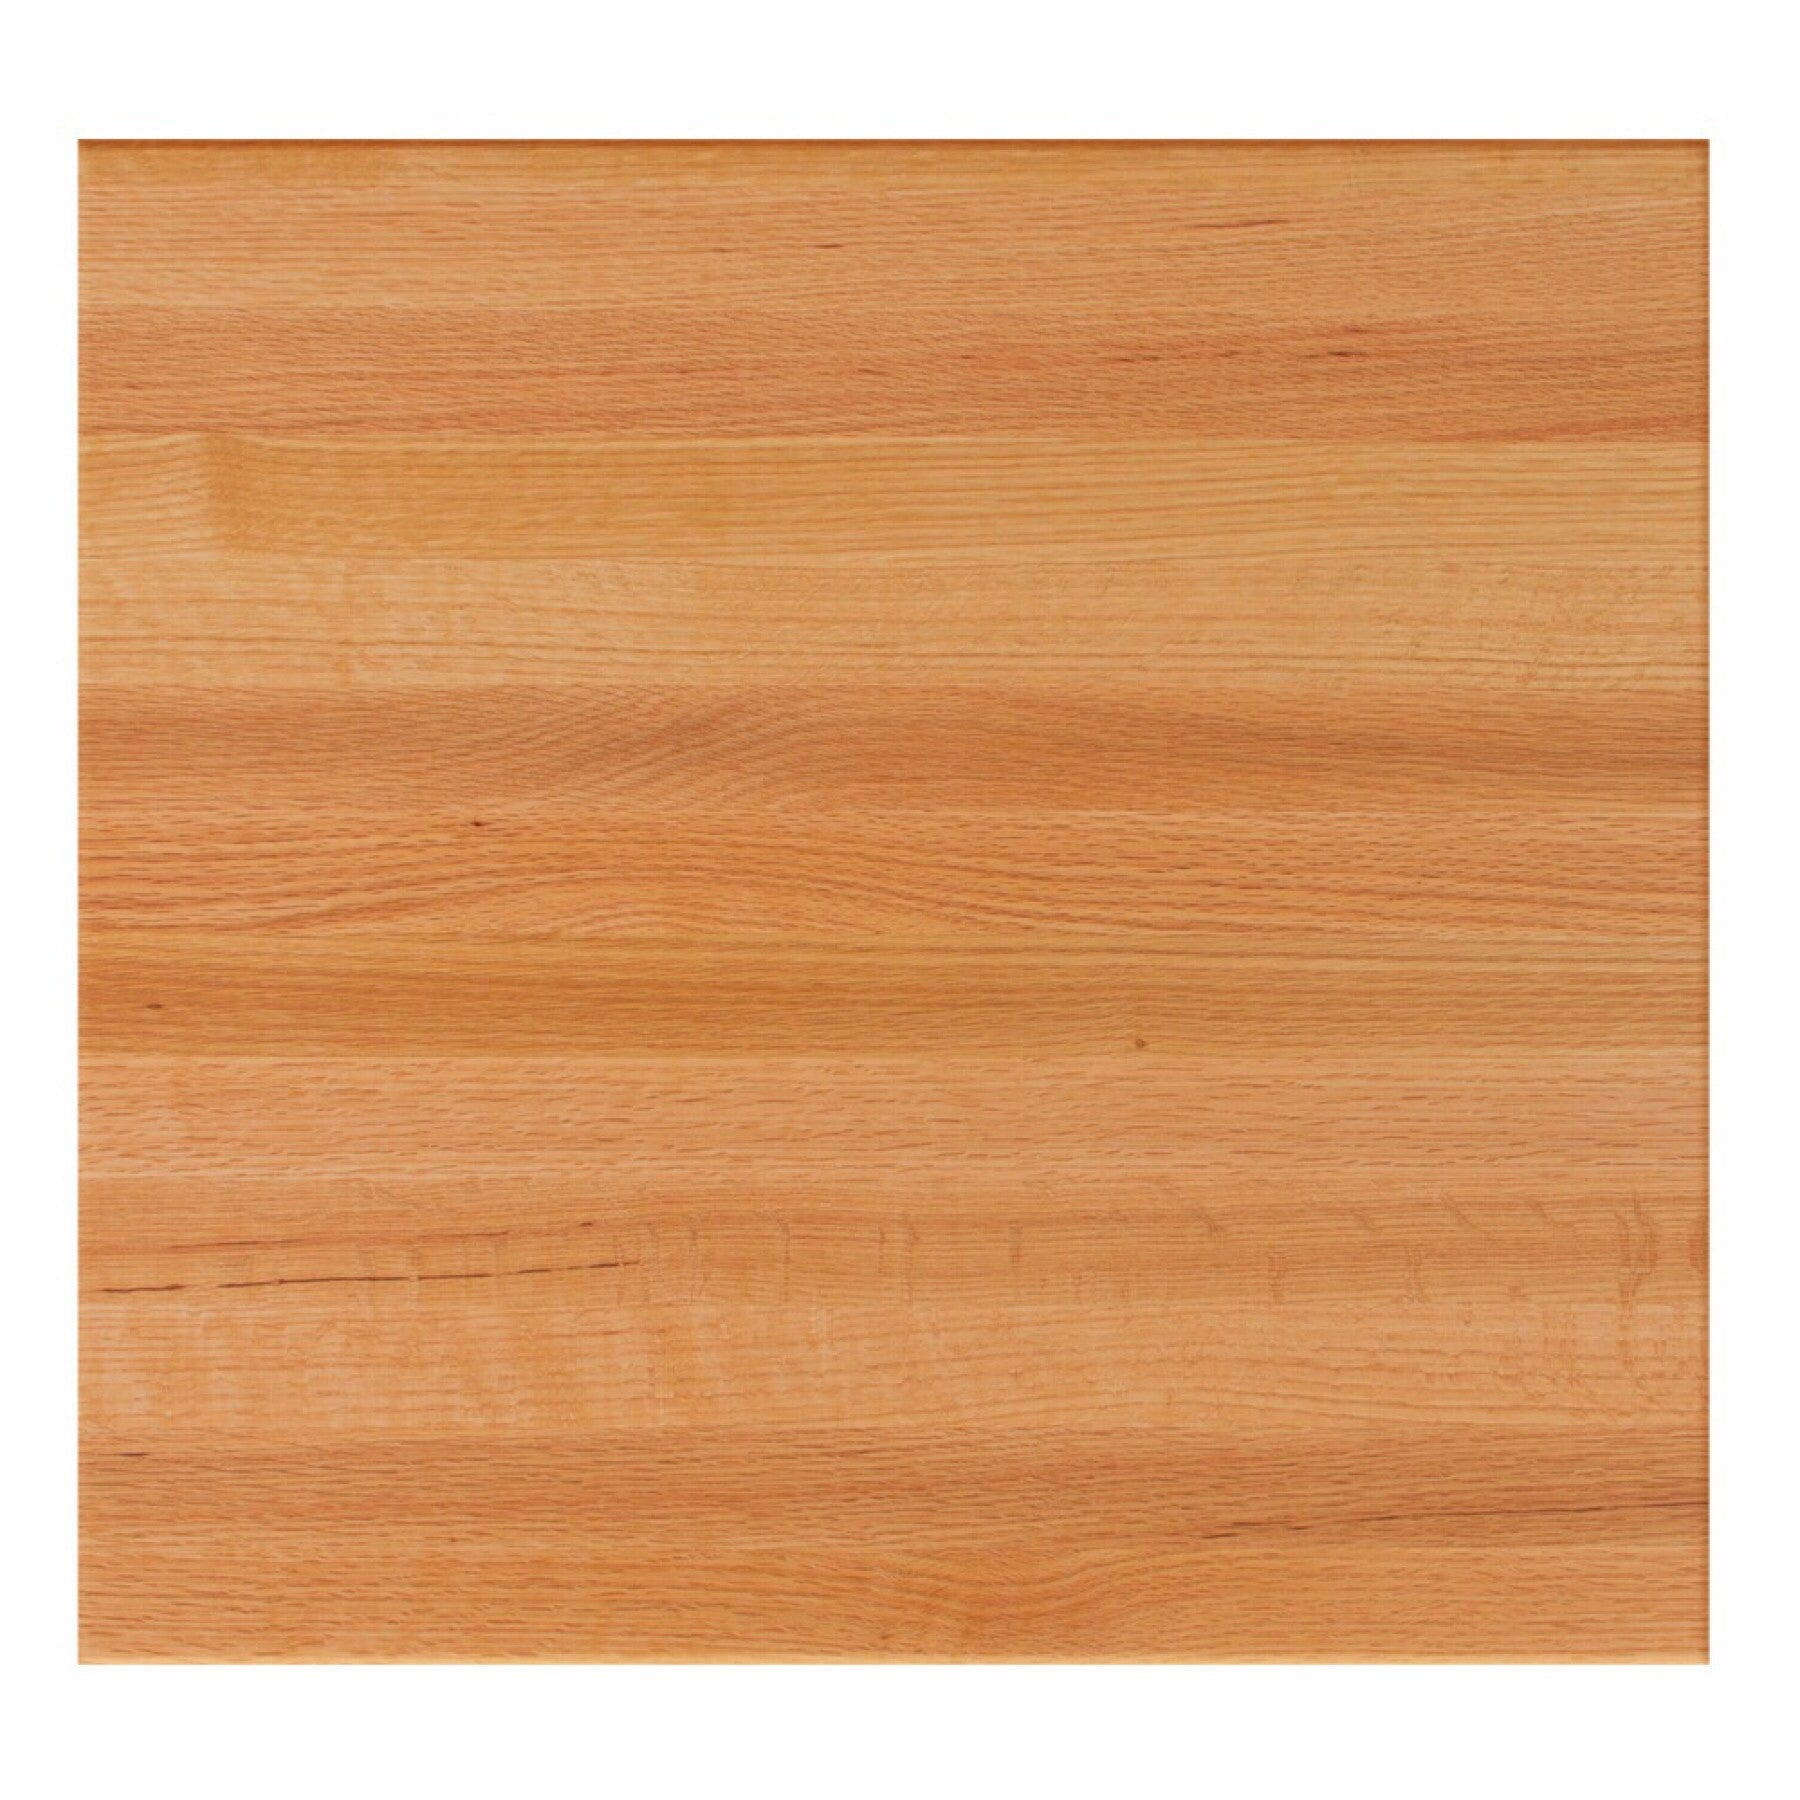 John Boos Square RTO Red Oak Butcher Block Table Top - Stainable